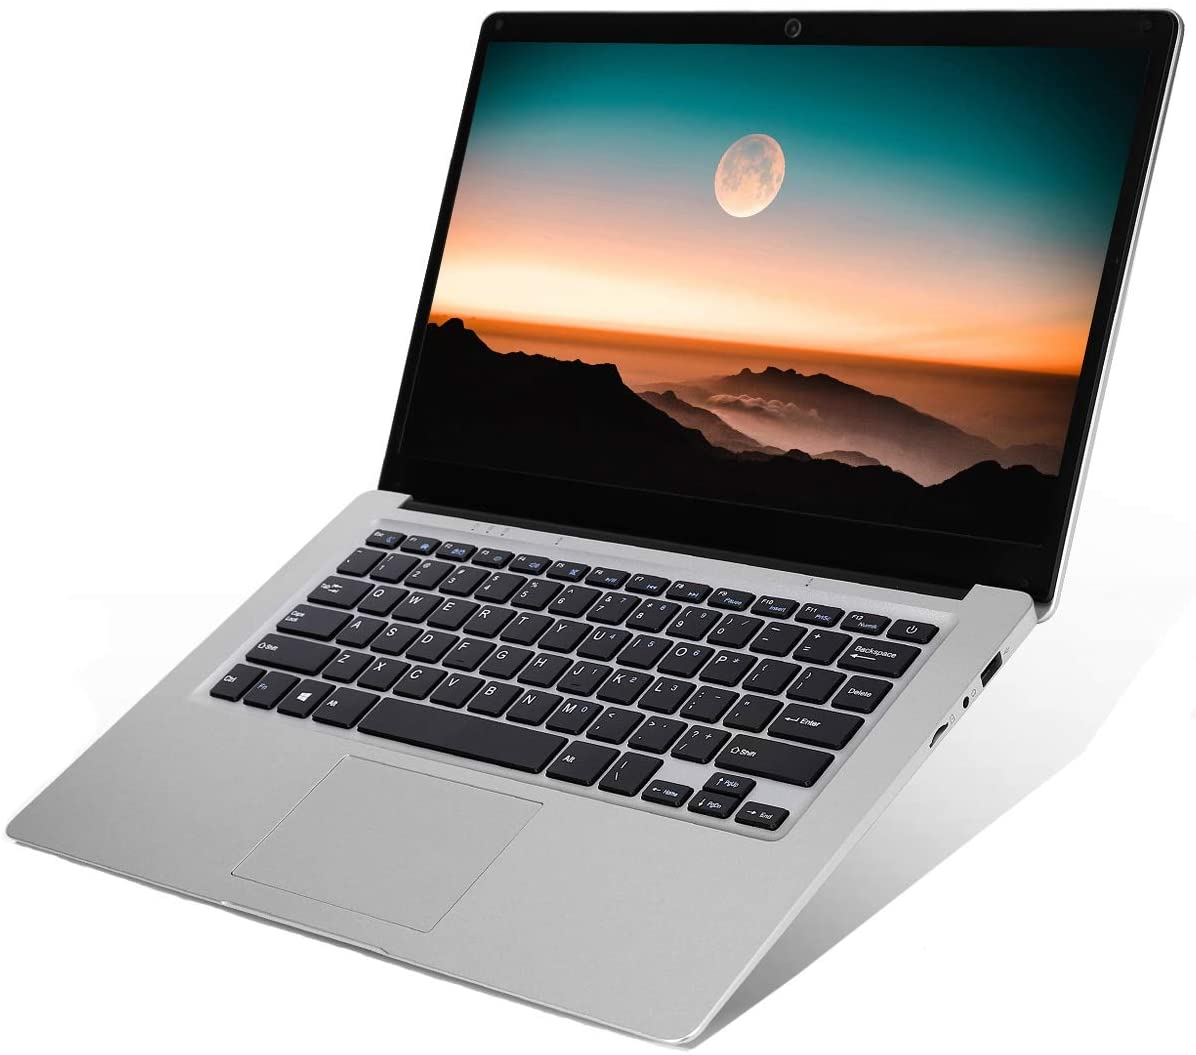 Manjee 14-inch Laptop